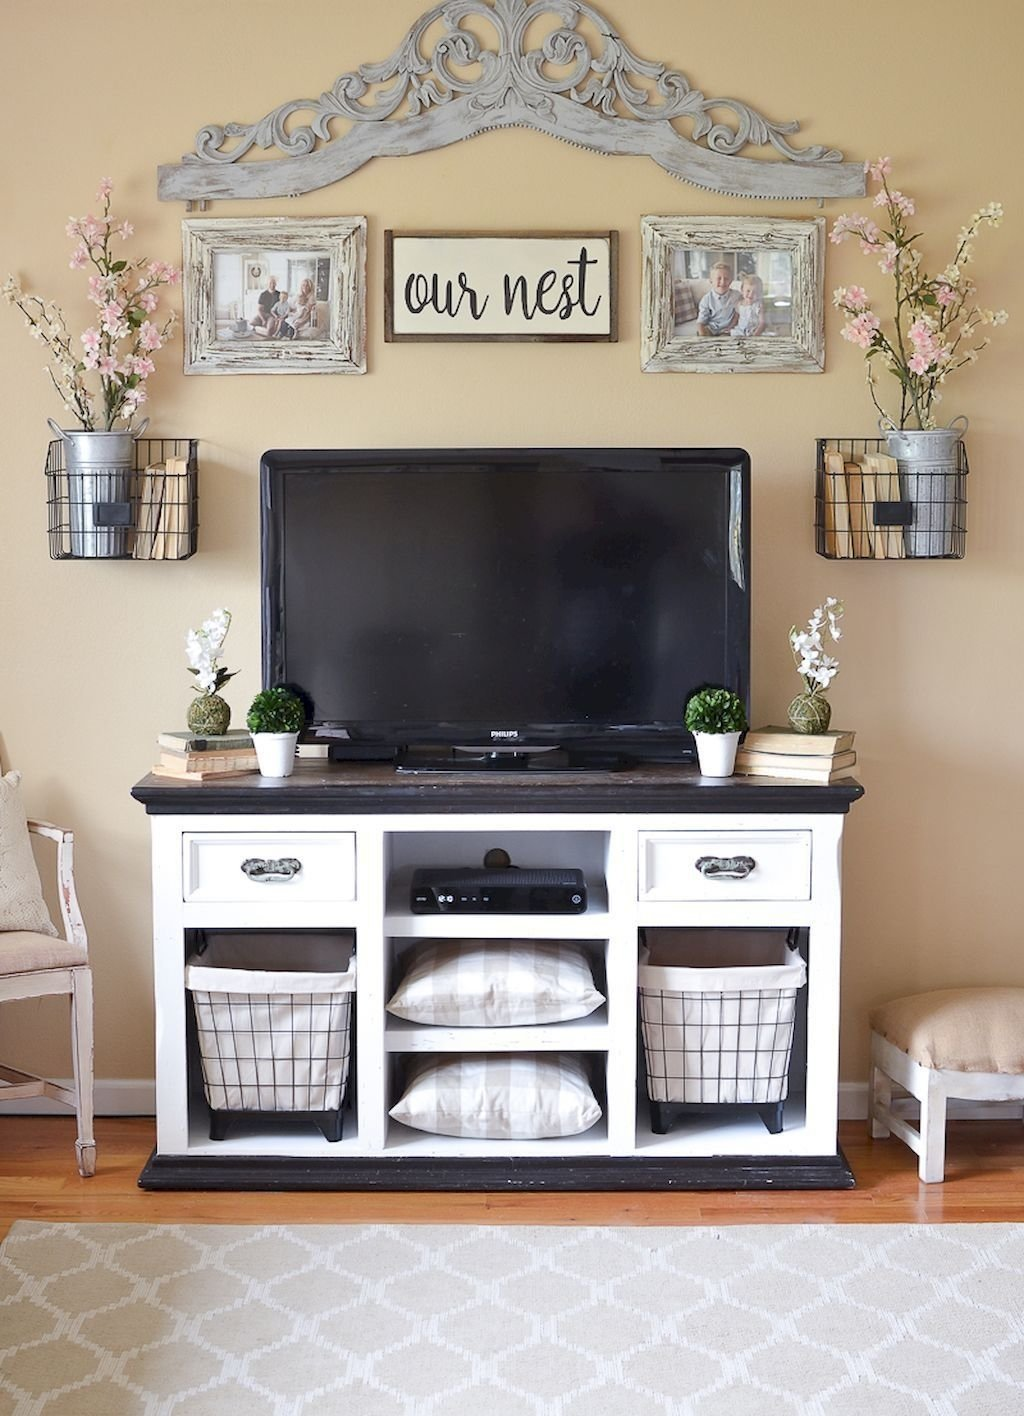 10 Stylish Country Decorating Ideas On A Budget first apartment decorating ideas on a budget 16 decorating 2021